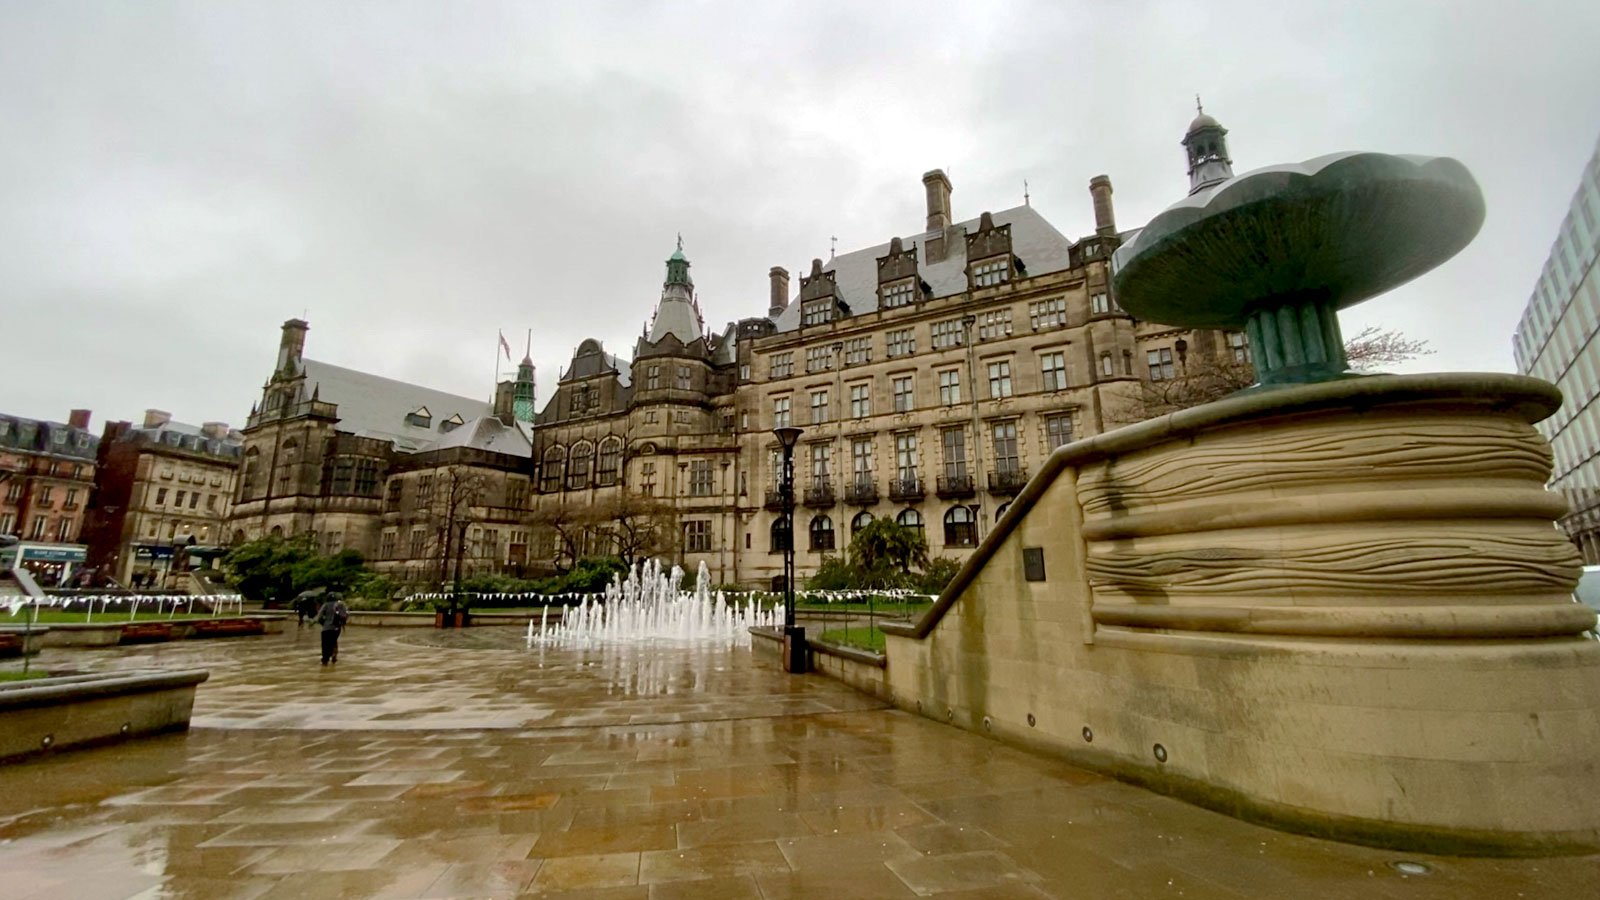 Sheffield Peace Gardens and Town Hall